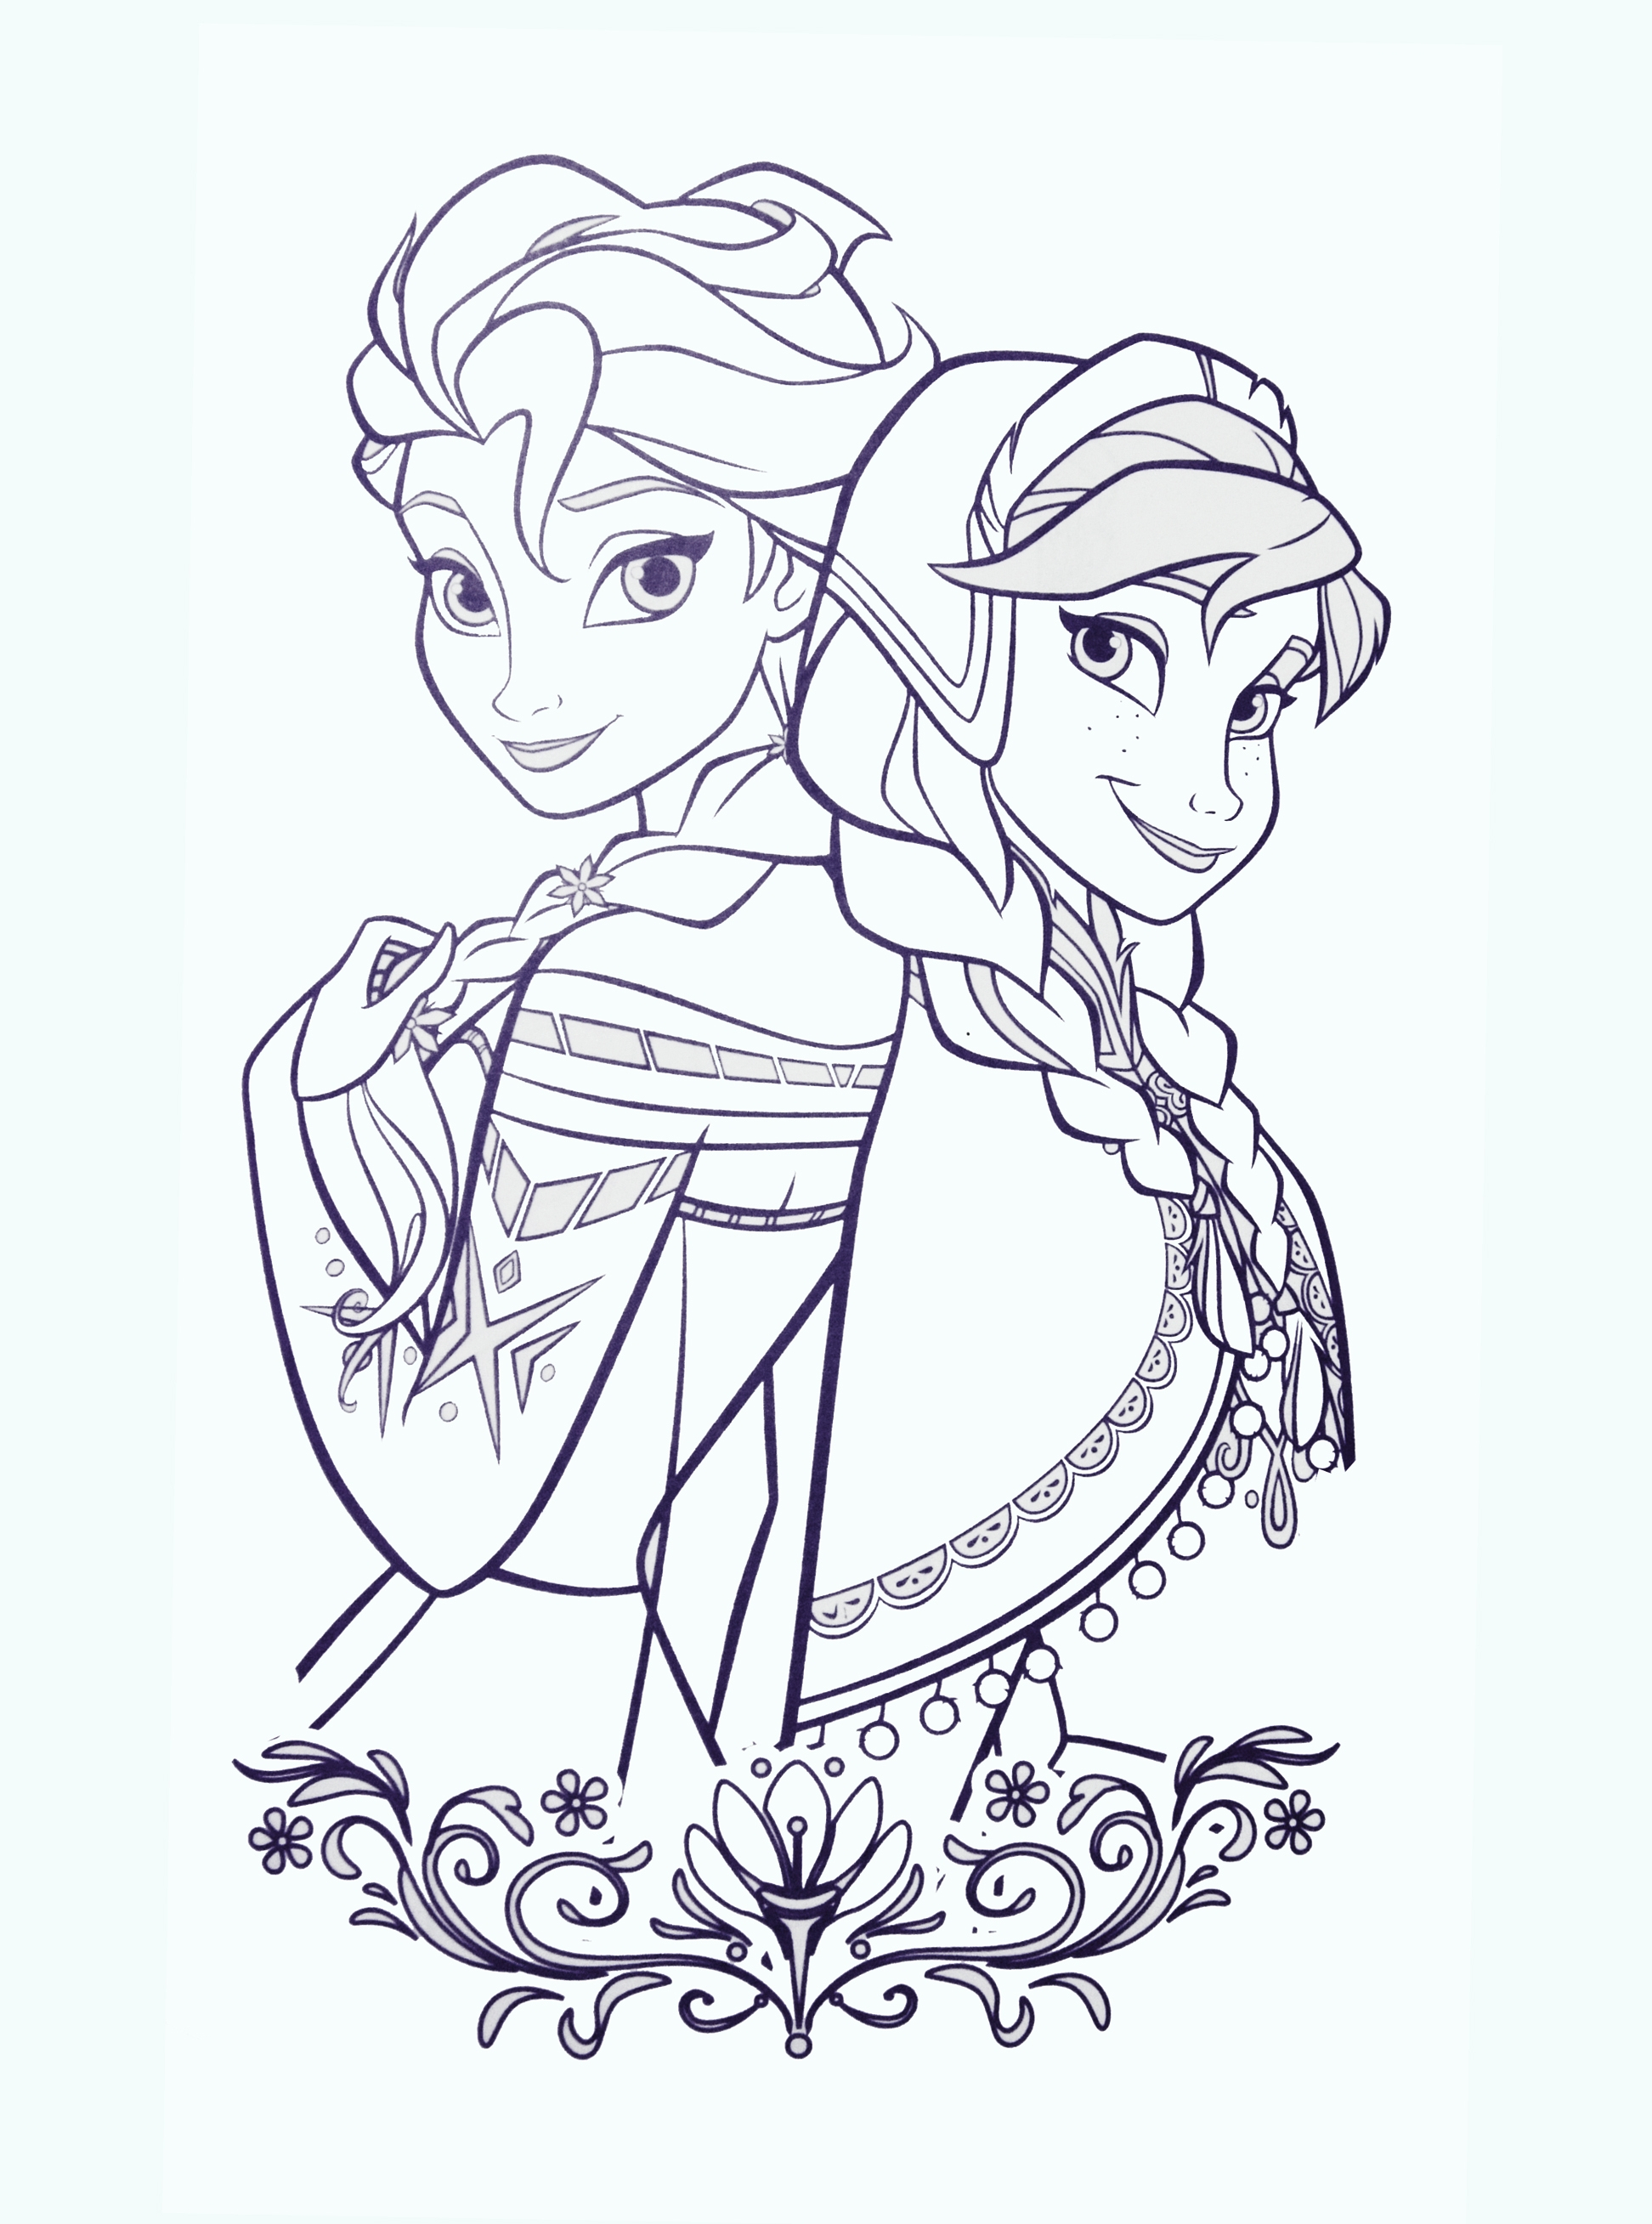 frozen elsa coloring pages - ana and elsa coloring page frozen elsa anna coloring page coloring pages pinterest